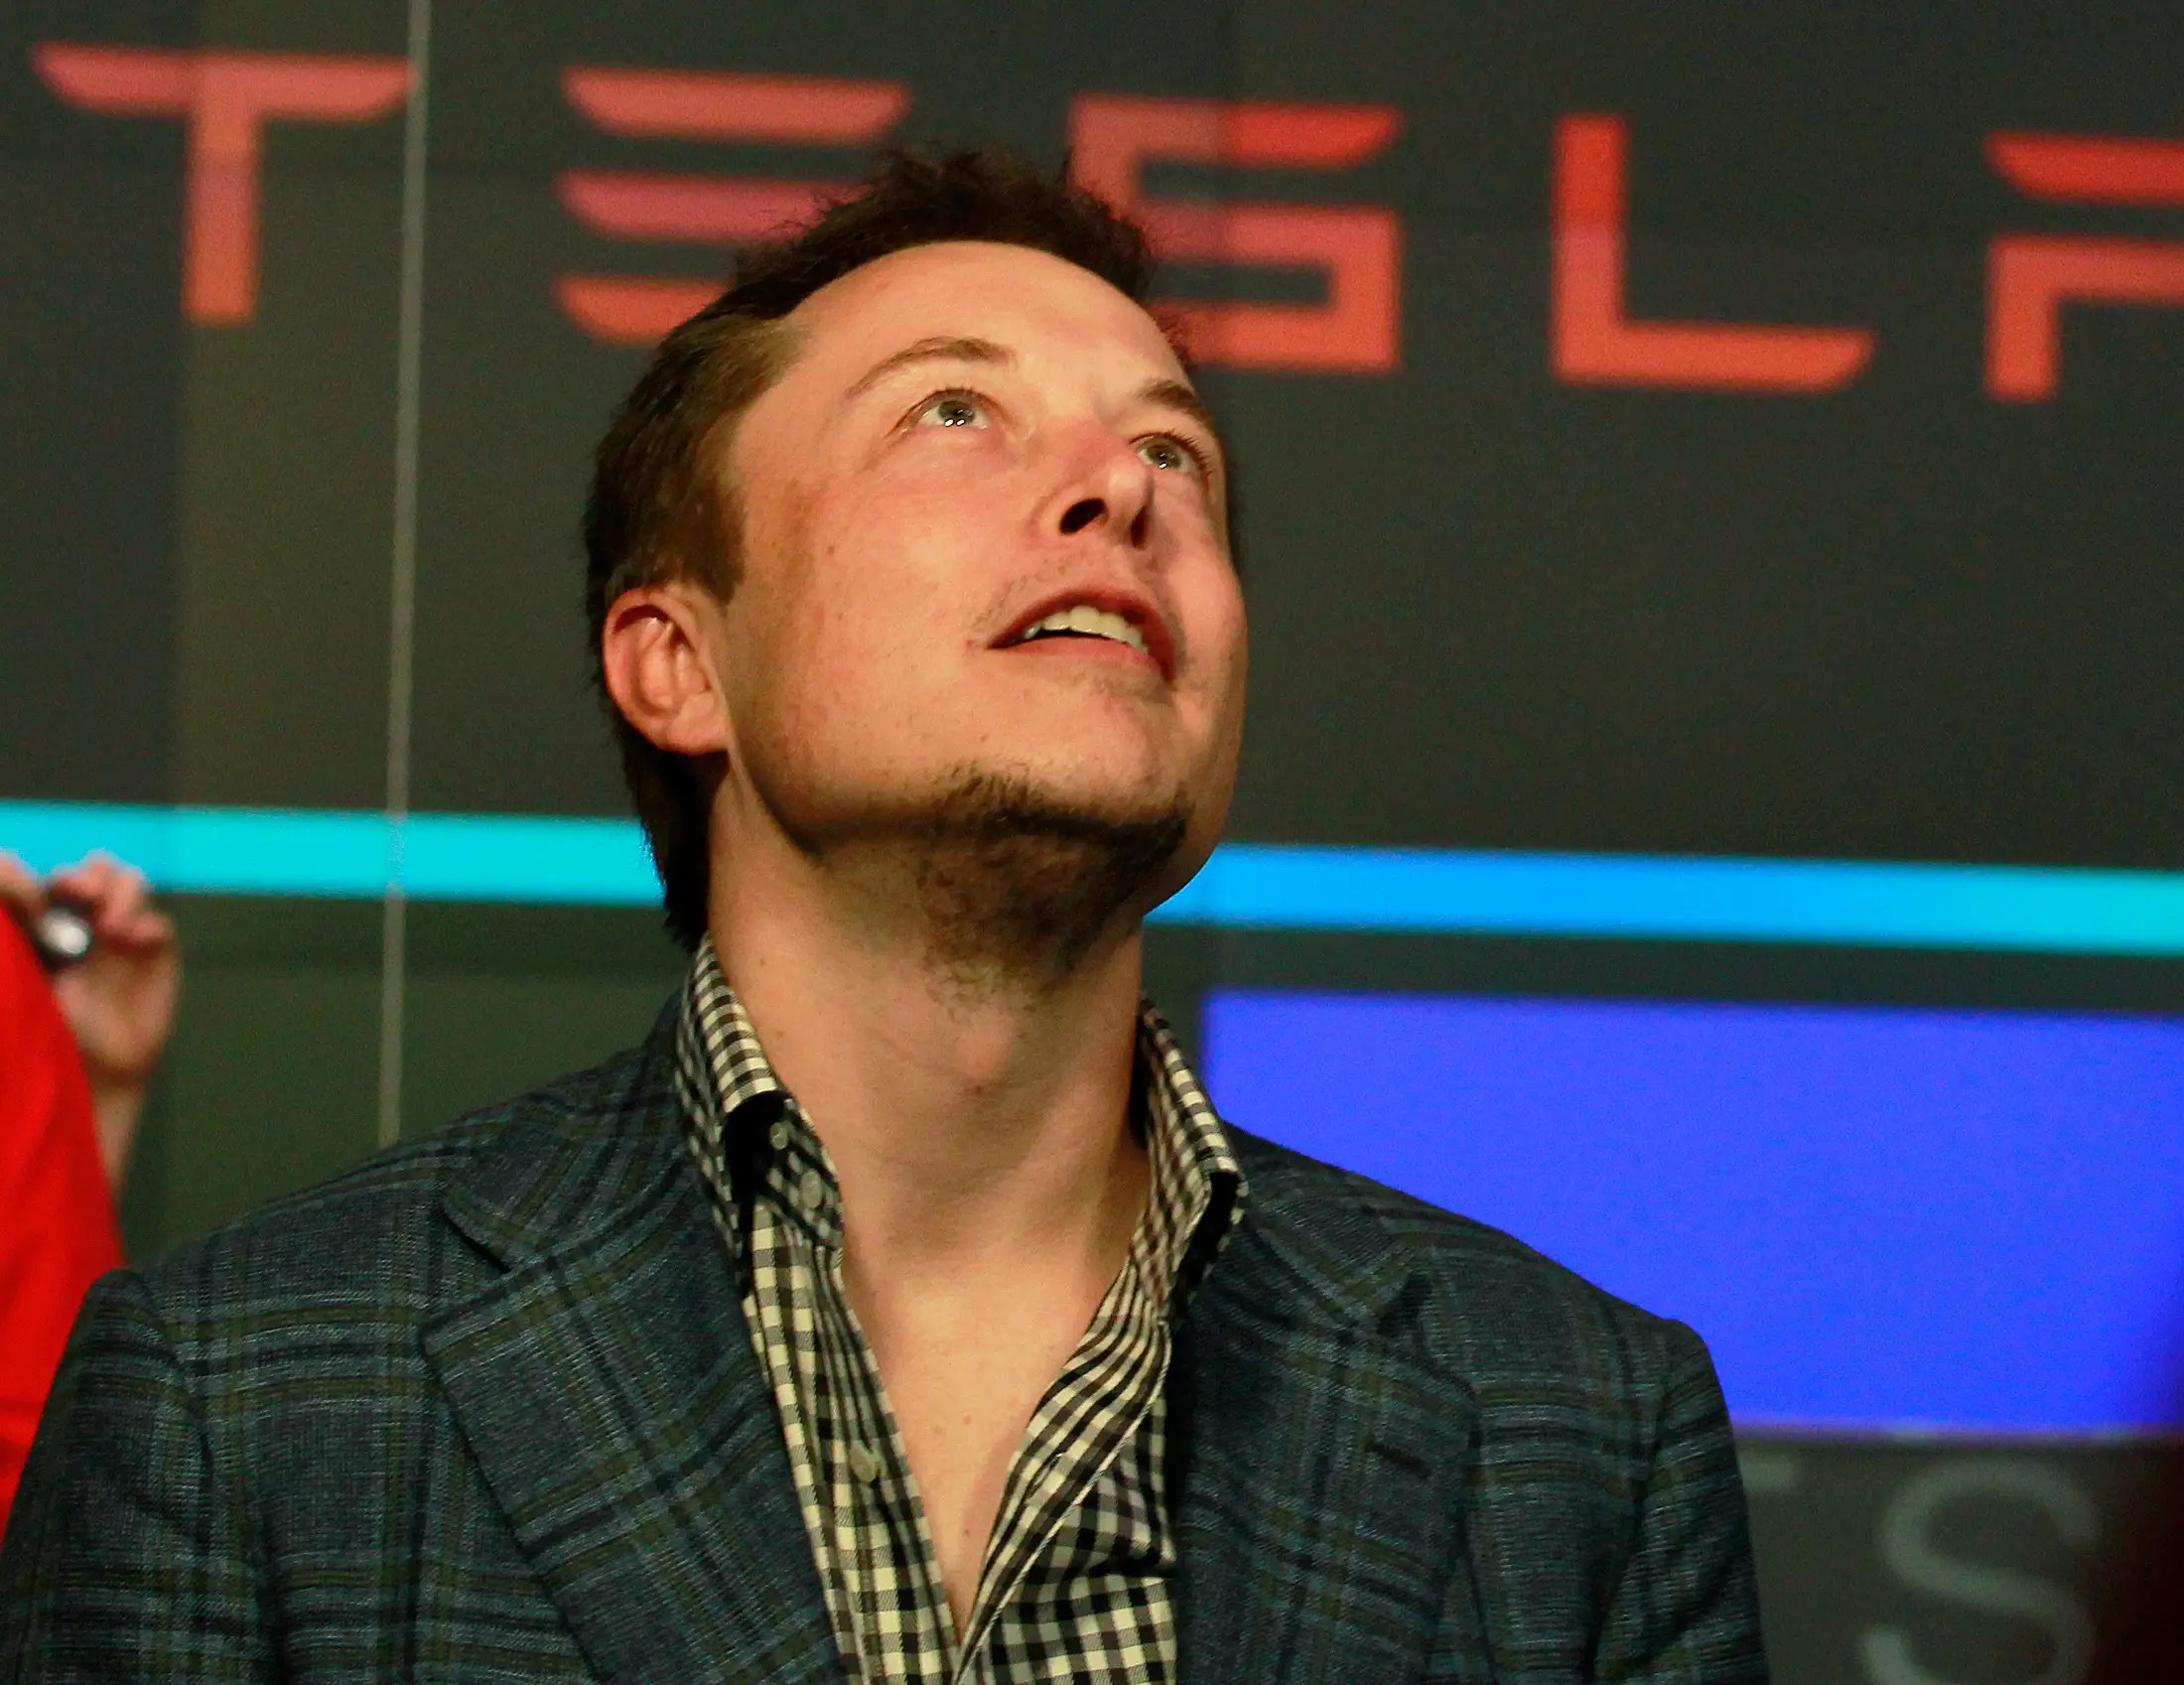 In 2008, with the financial crisis seriously limiting his options, Musk invested $40 million into Tesla and loaned them $40 million more to save the company from bankruptcy. Not coincidentally, he was named CEO of Tesla that same year.